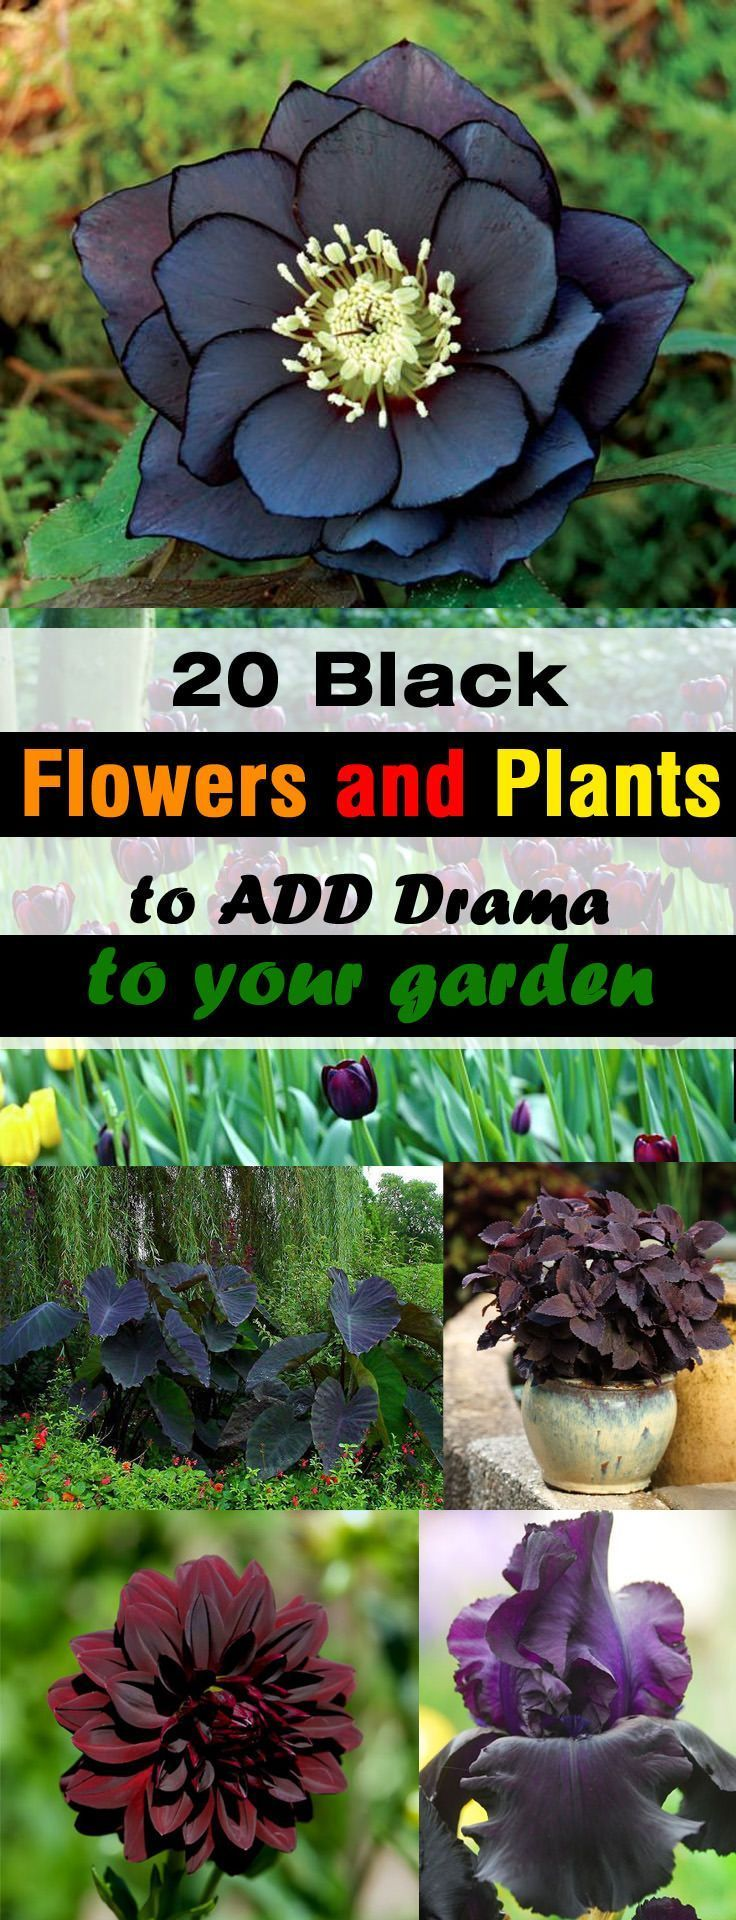 Add a unique touch of color and drama to your garden by adding black flowers…